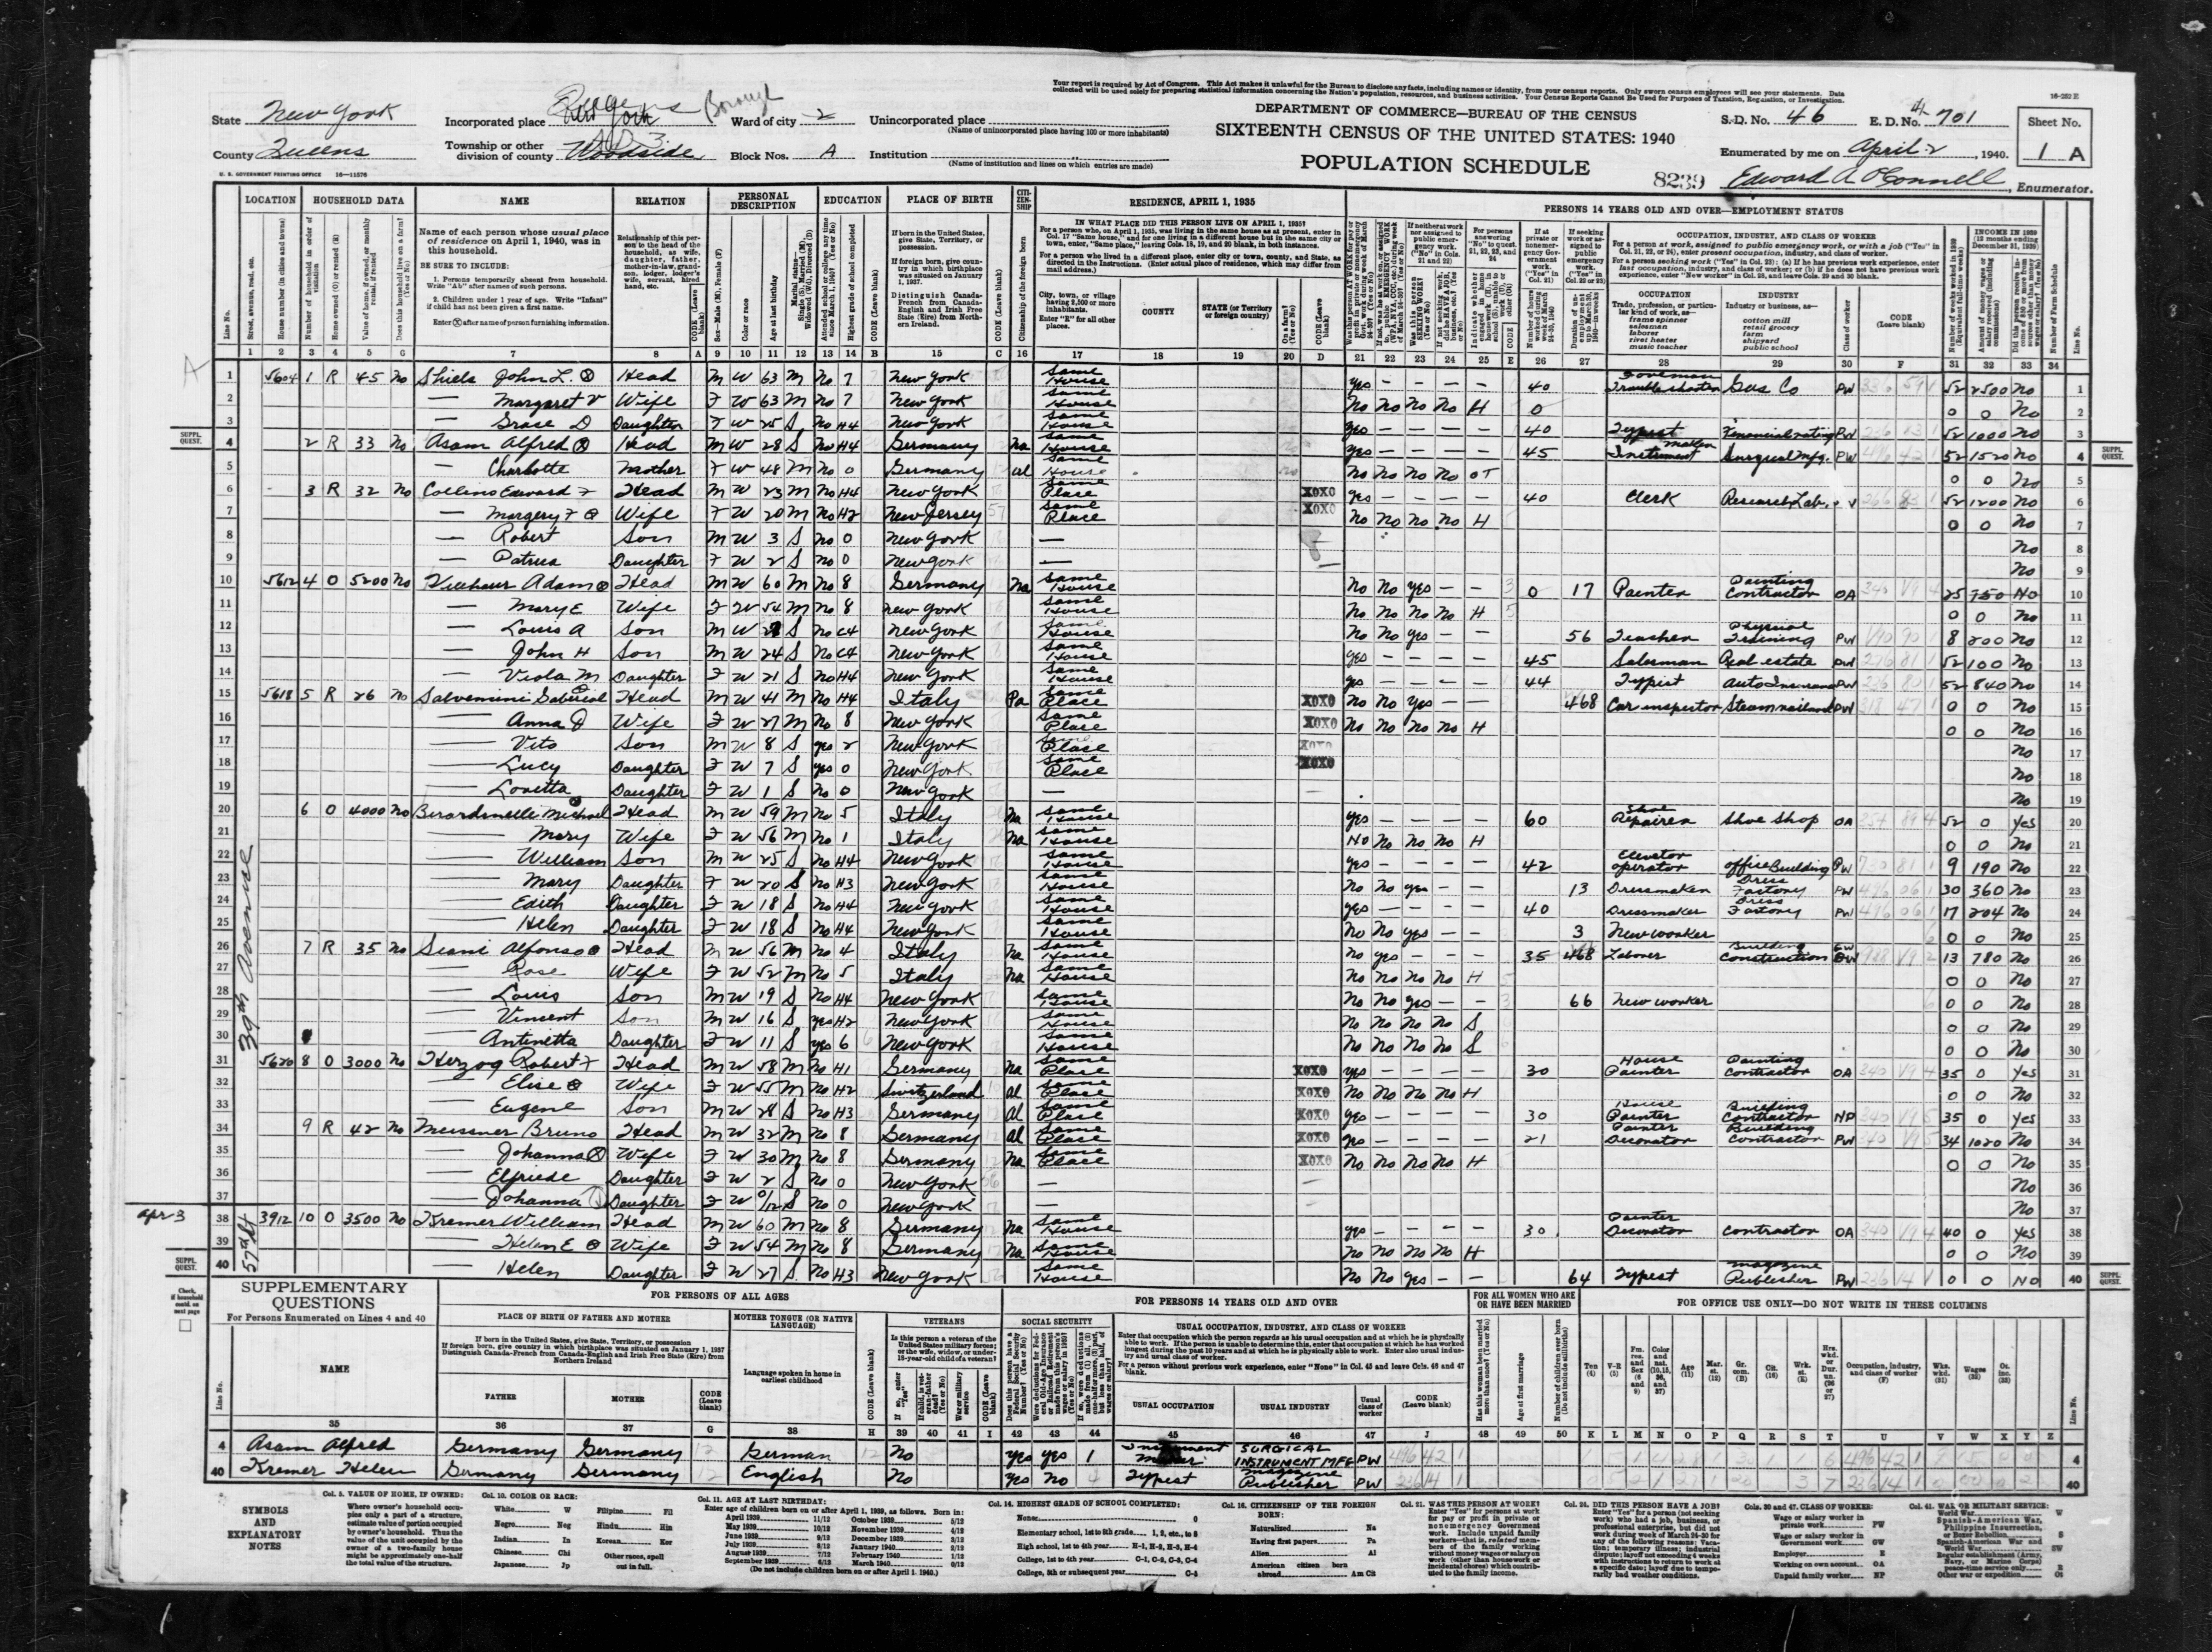 1940 Census Population Schedules - New York - Queens County - ED 41-701